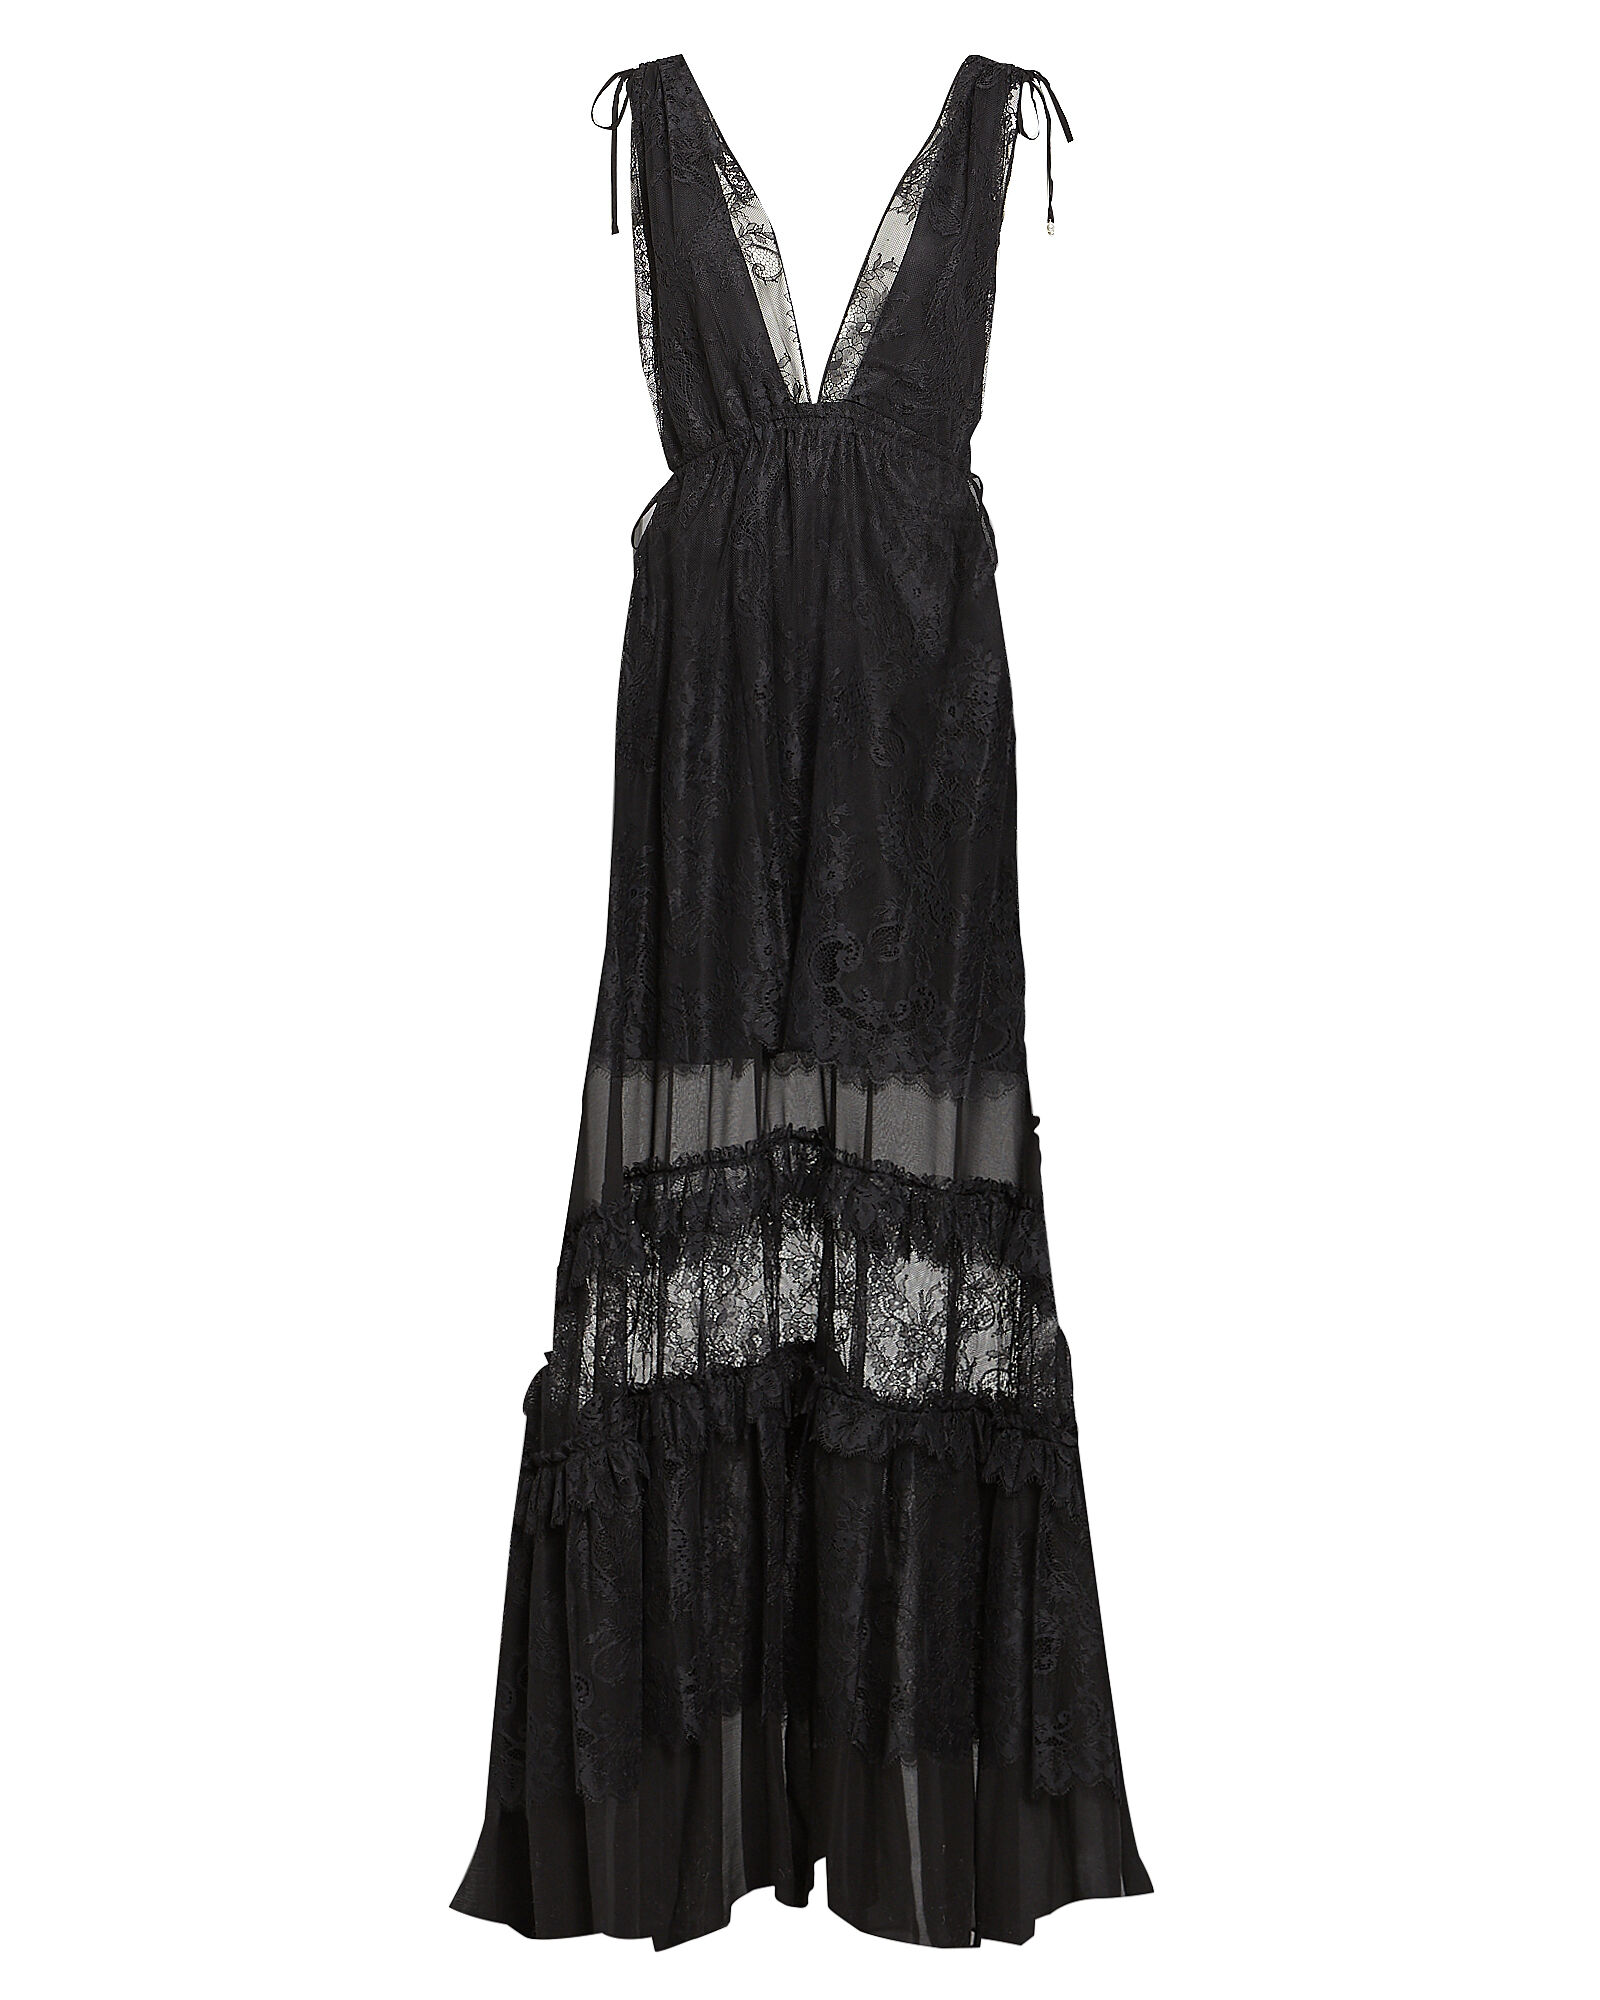 Umbra Tiered Lace Gown, BLACK, hi-res